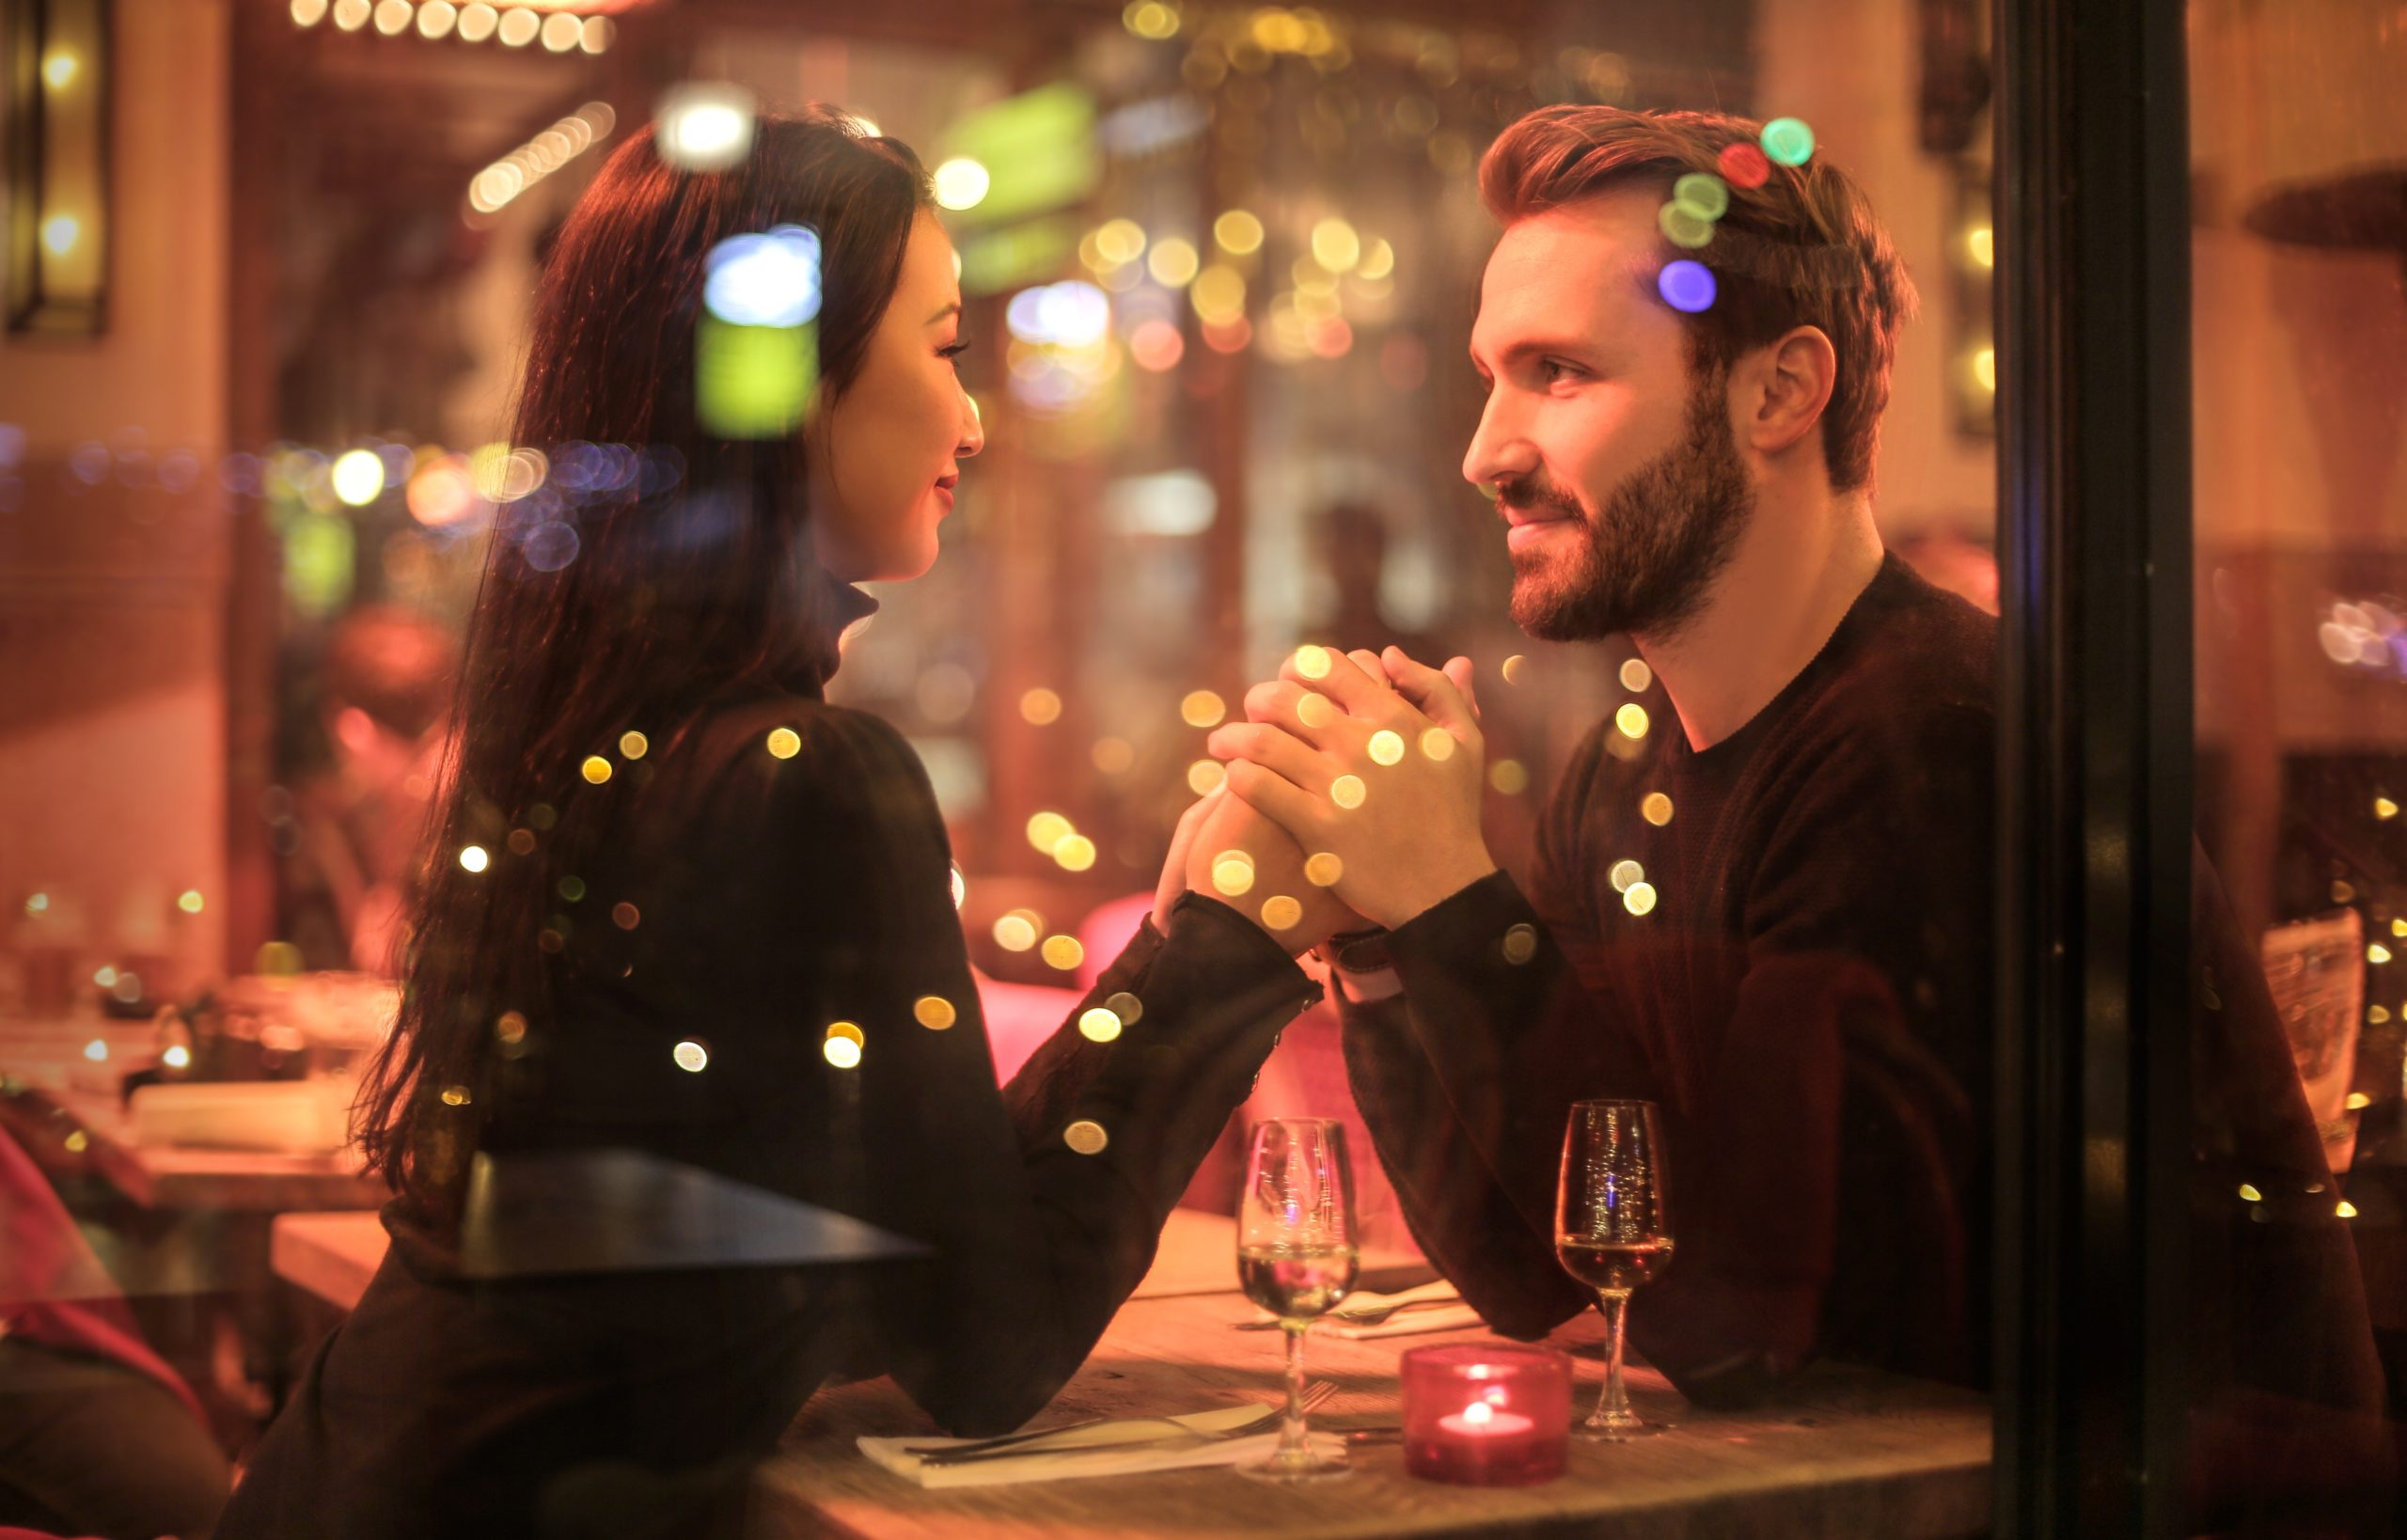 Most dating sites exploit your desire to find a partner - Dr Finn Majlergaards blog